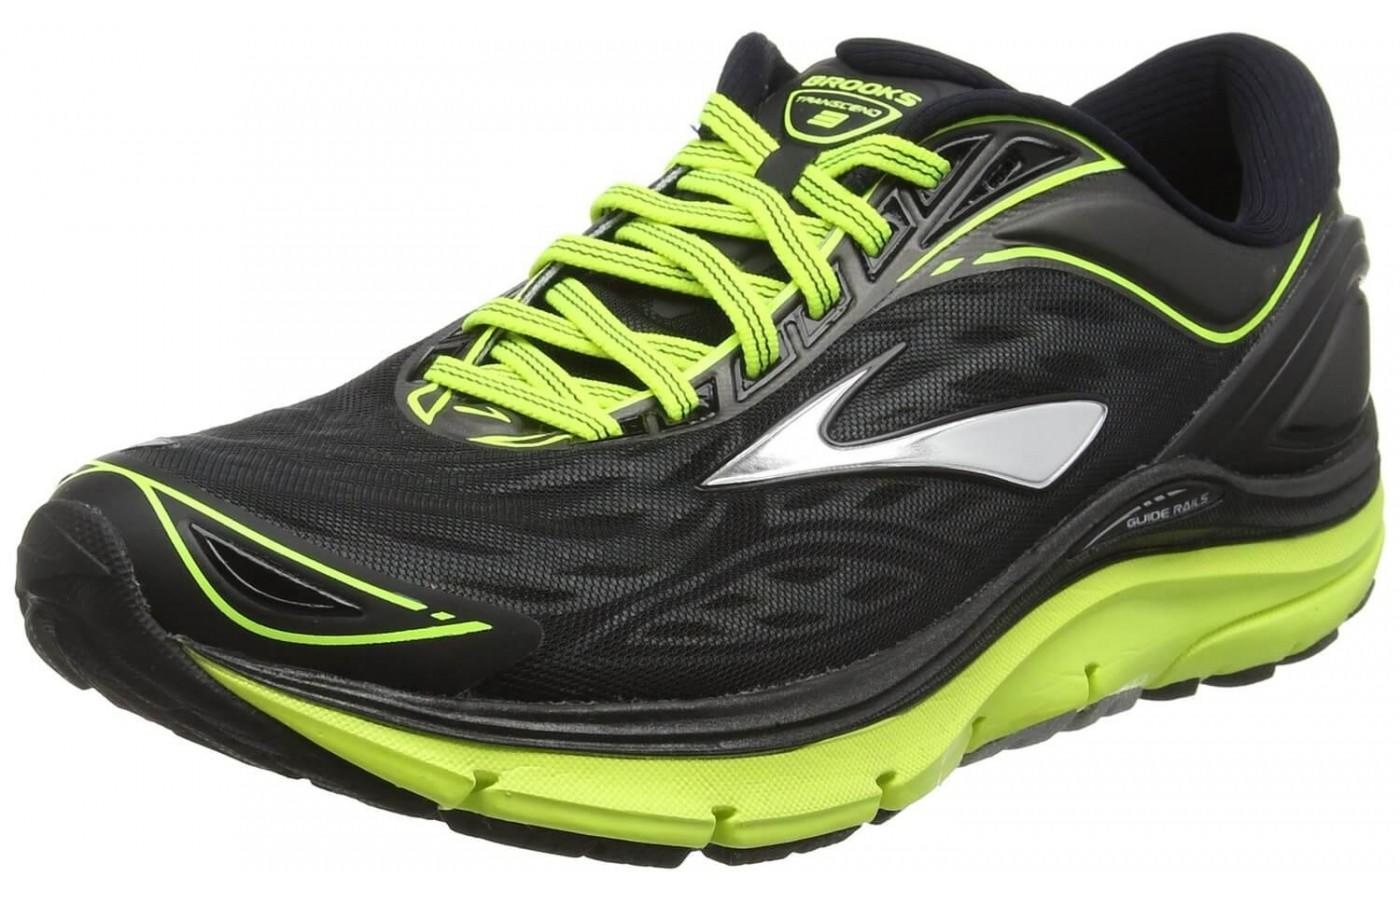 3f2163fe21661 the Brooks Transcend 3 is a great running shoe for those that need  customized cushioning in ...